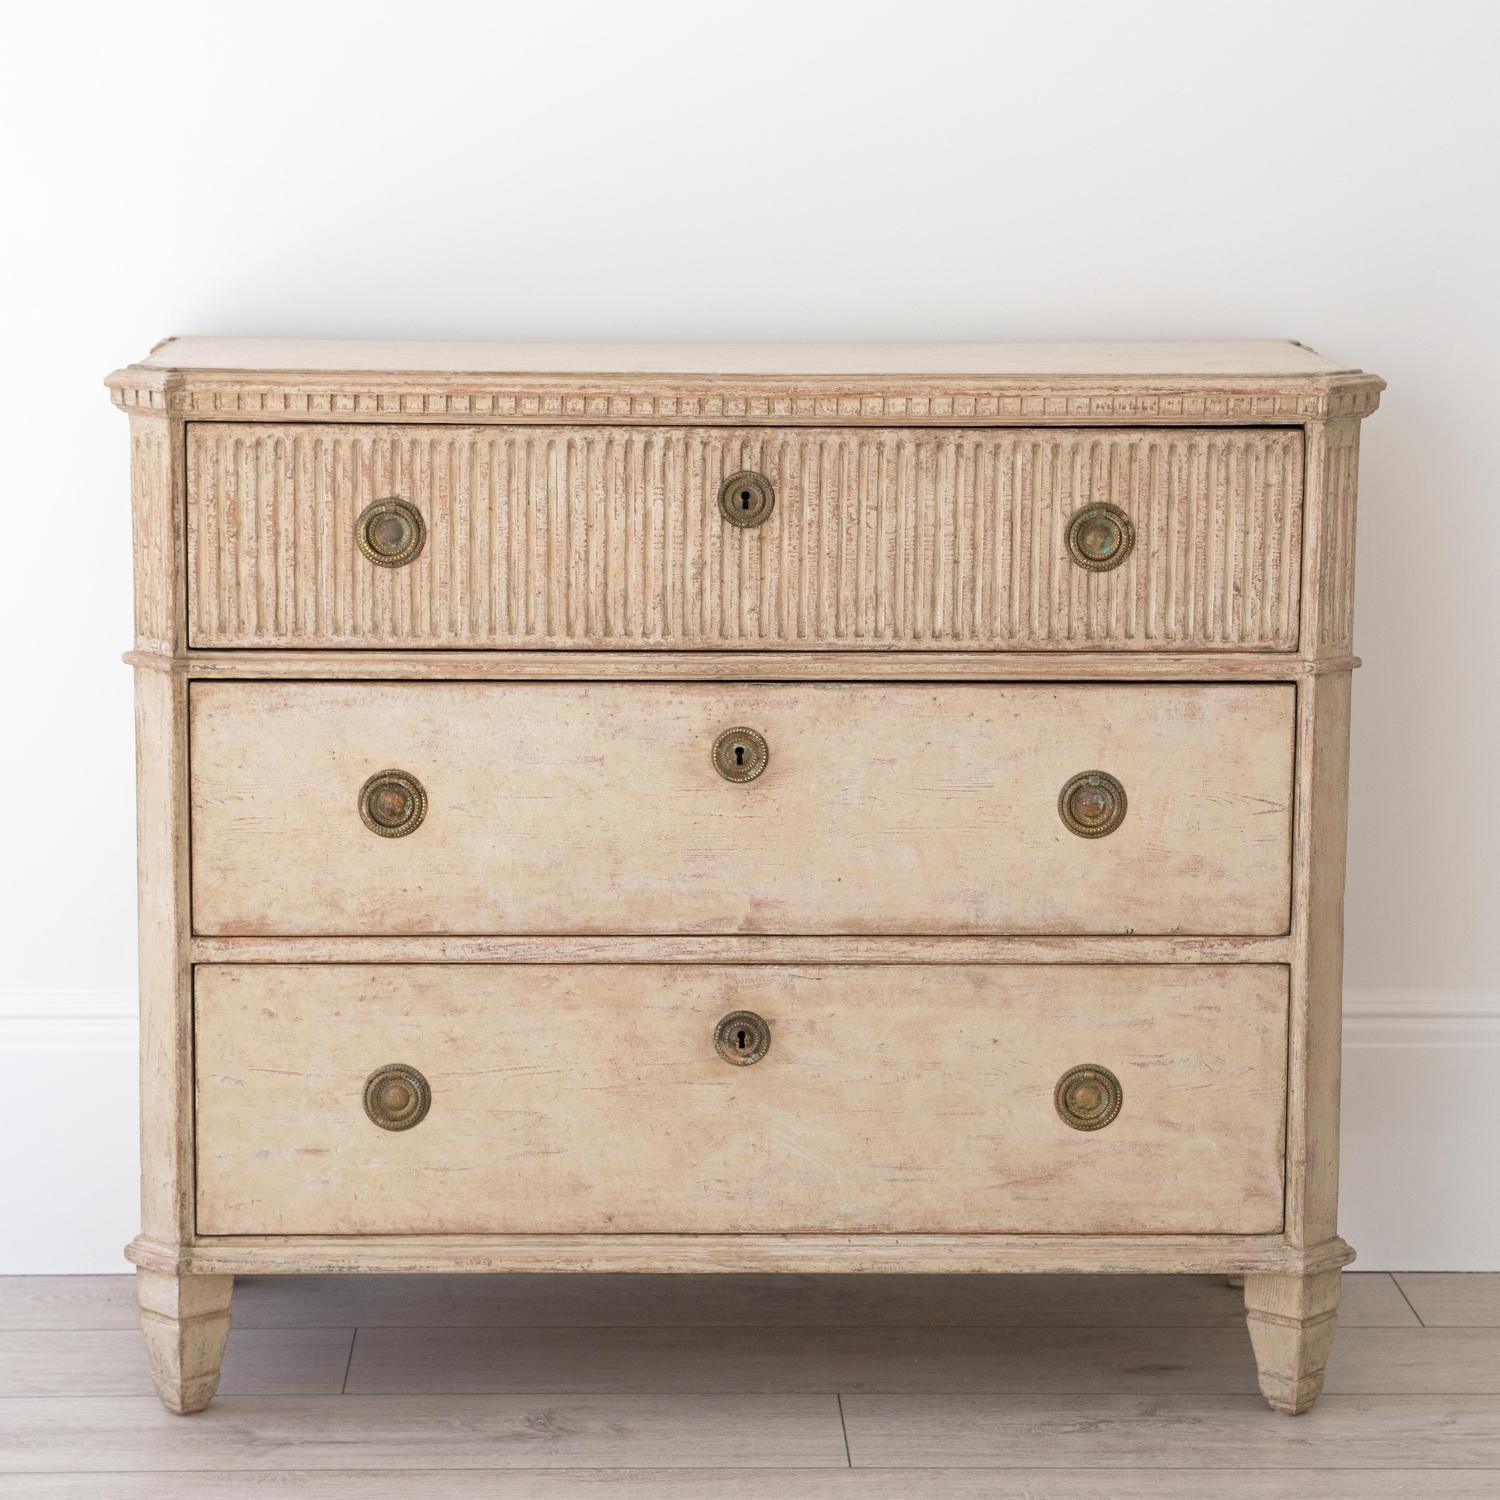 MID 19TH CENTURY SWEDISH GUSTAVIAN STYLE CHEST